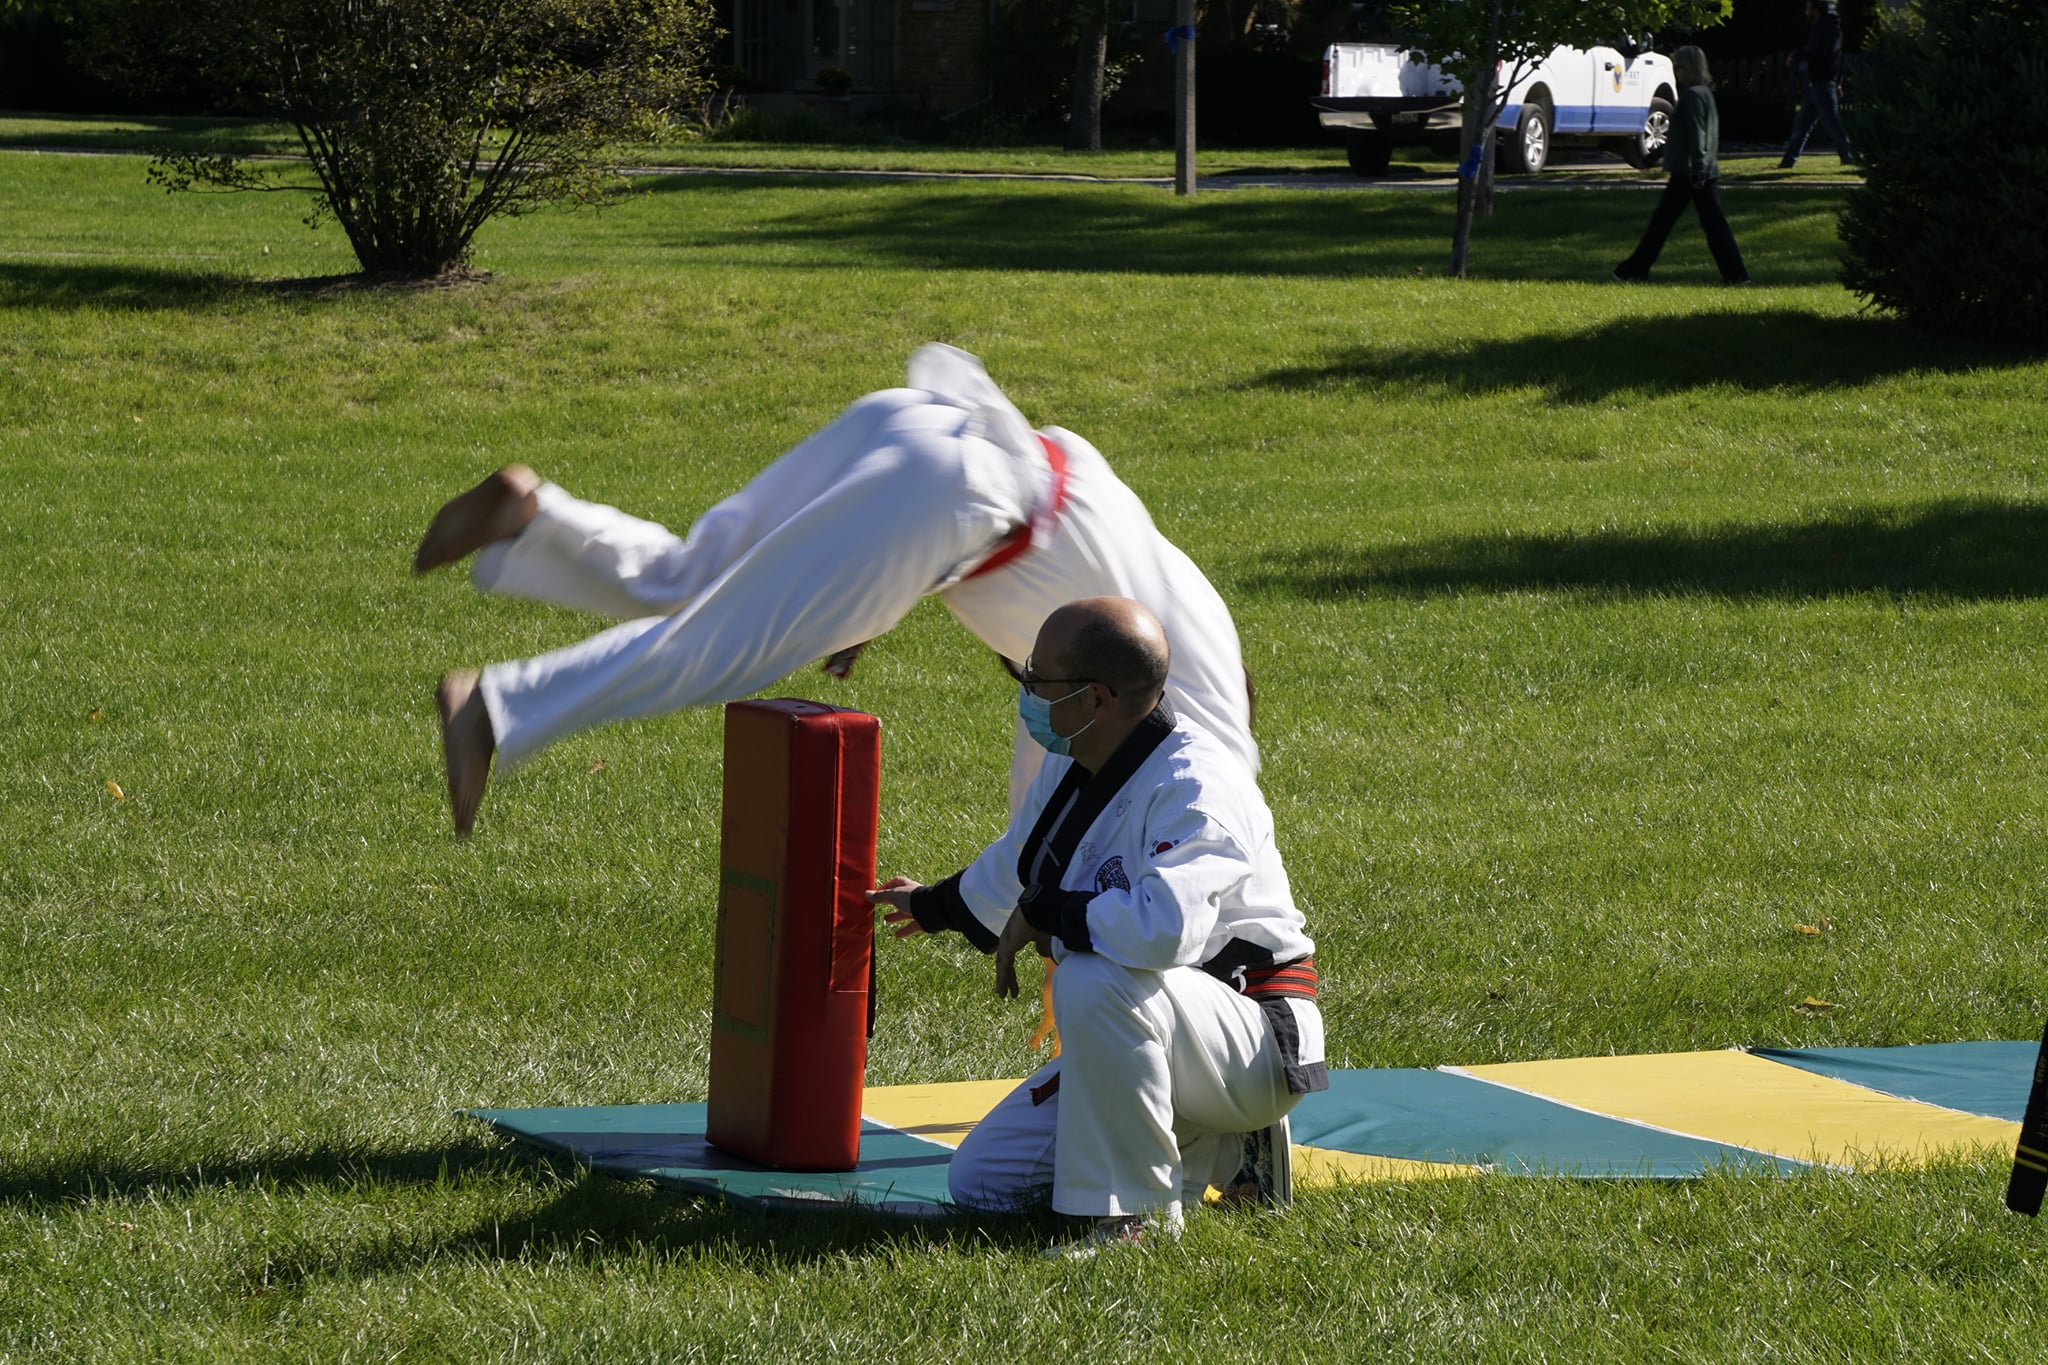 Elmhurst Tang Soo Do Karate: Home of traditional Korean